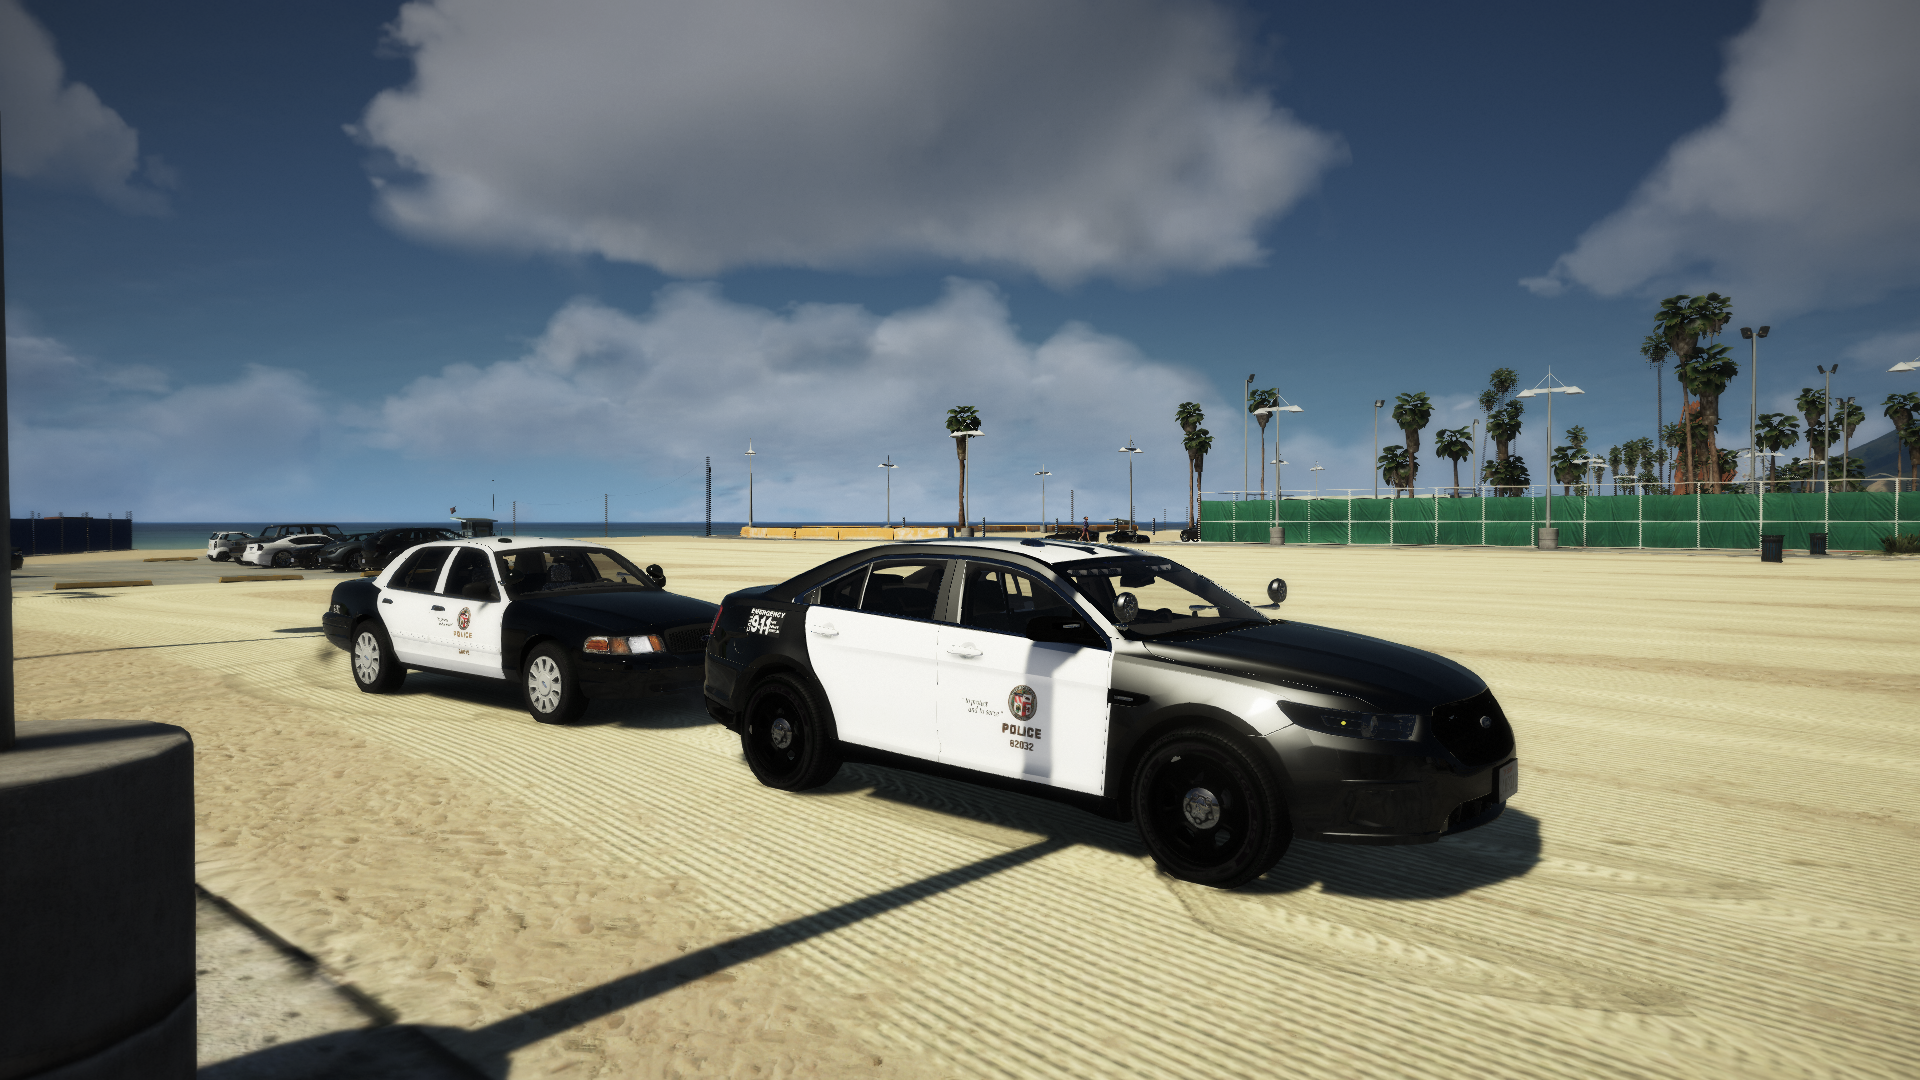 police of san andreas